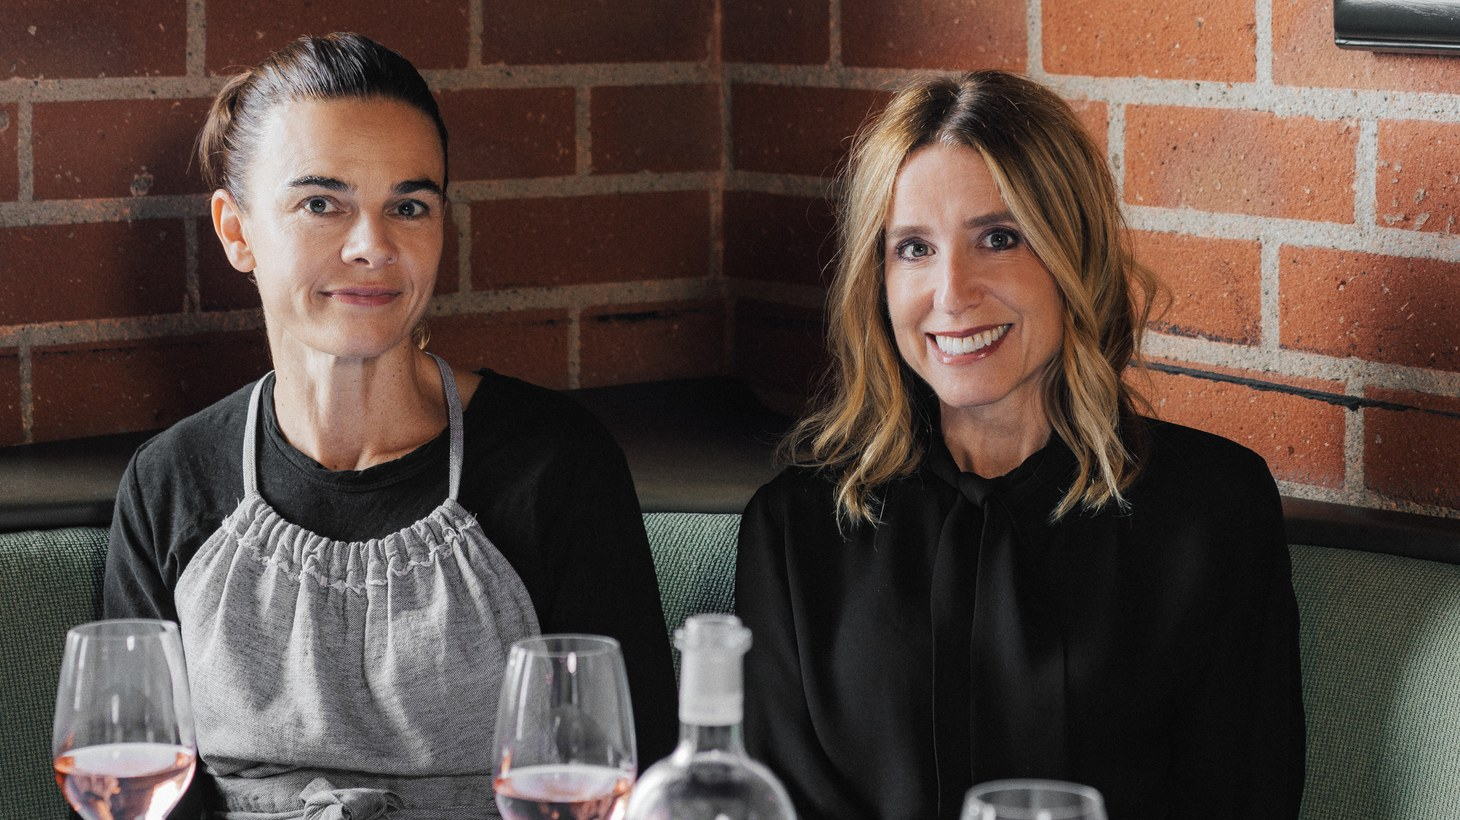 Suzanne Goin and Caroline Styne started A.O.C. as a small wine bar on 3rd Street. They replicate the menu and sprawling wine list in Brentwood, converting their restaurant, Tavern, into a second location.